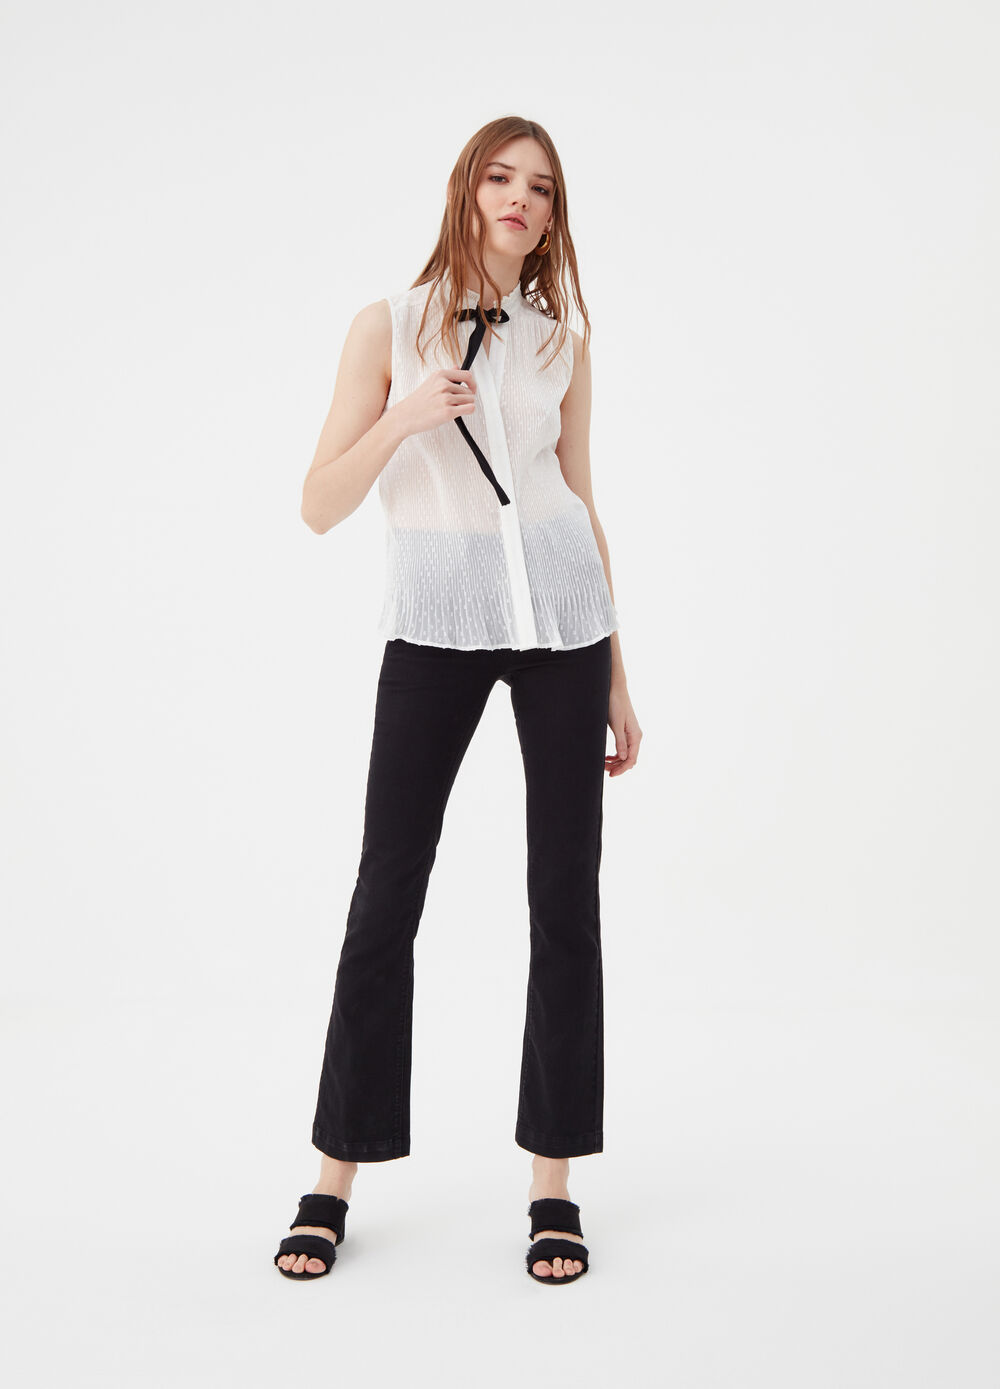 Sleeveless blouse with tie fastening at the neck